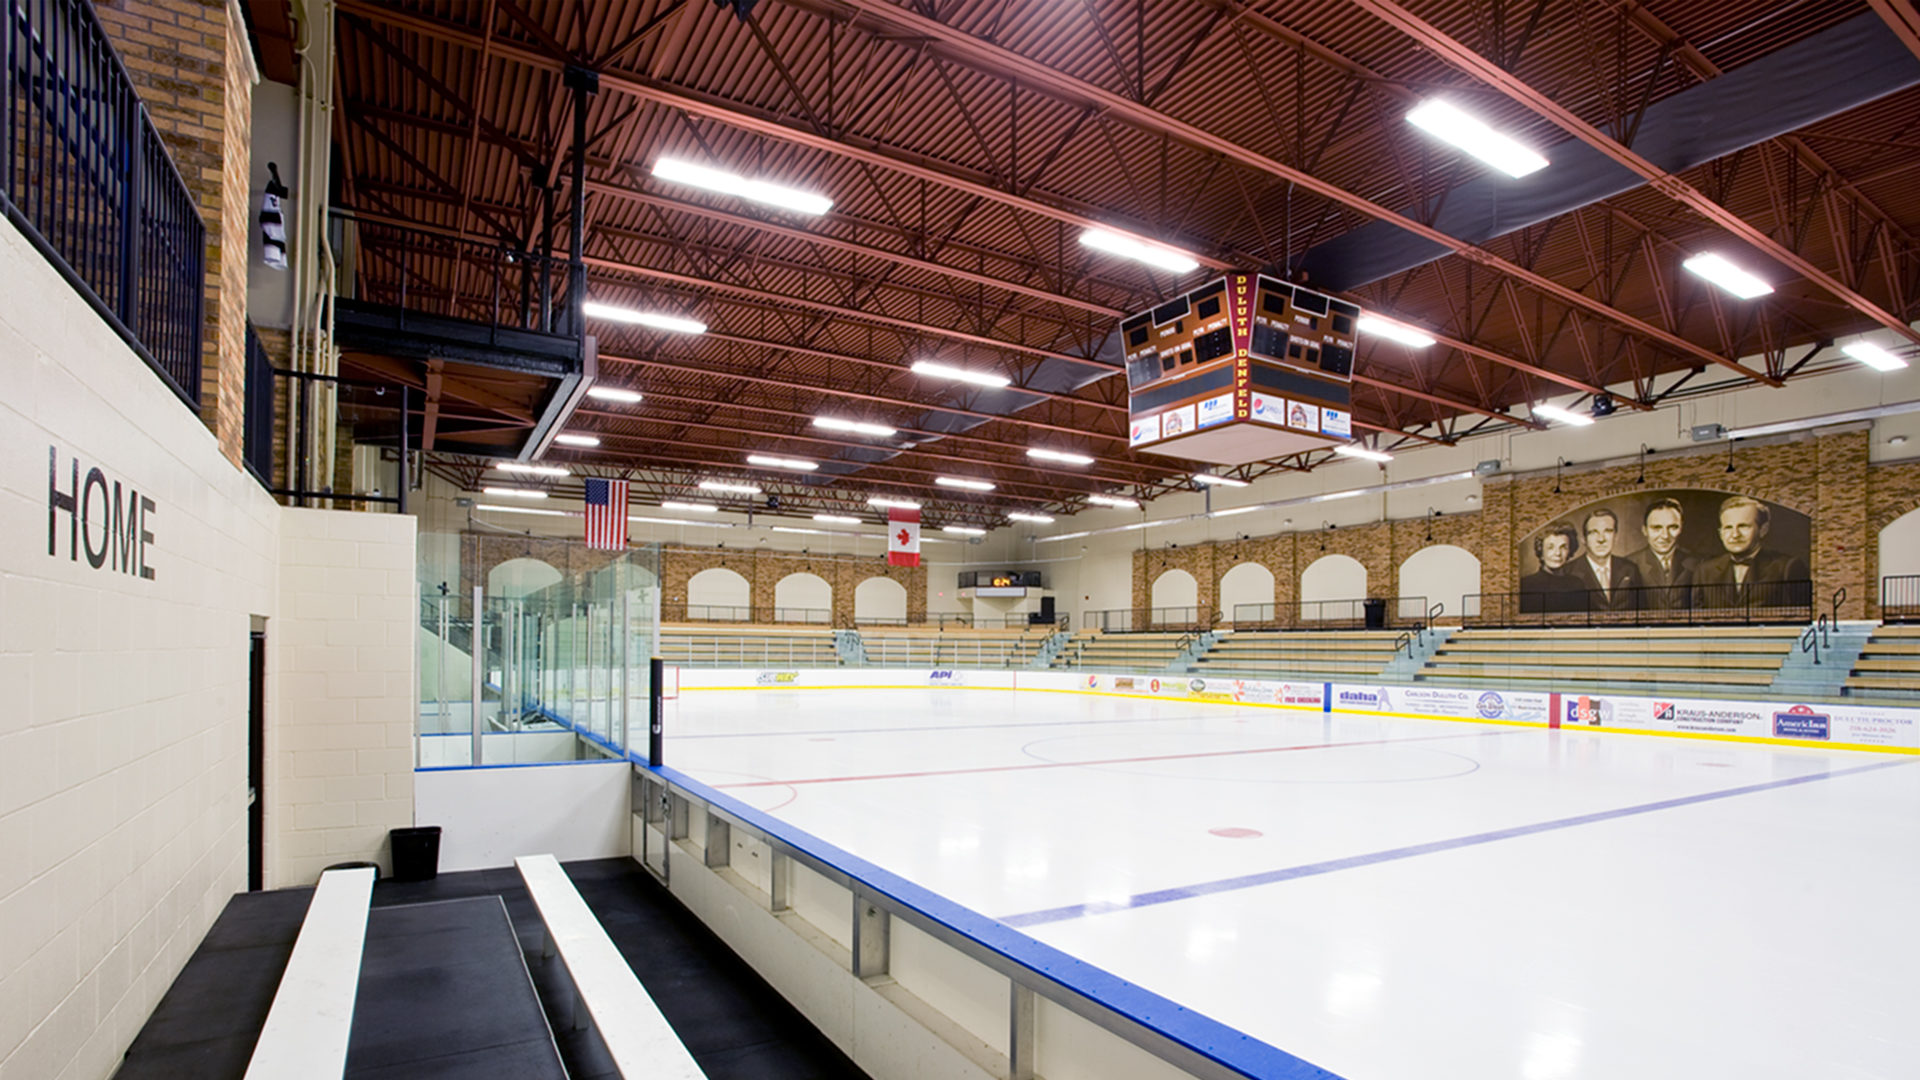 Duluth Heritage Sports Center Hockey Arena Interior Rink Highlighting photographic Mural